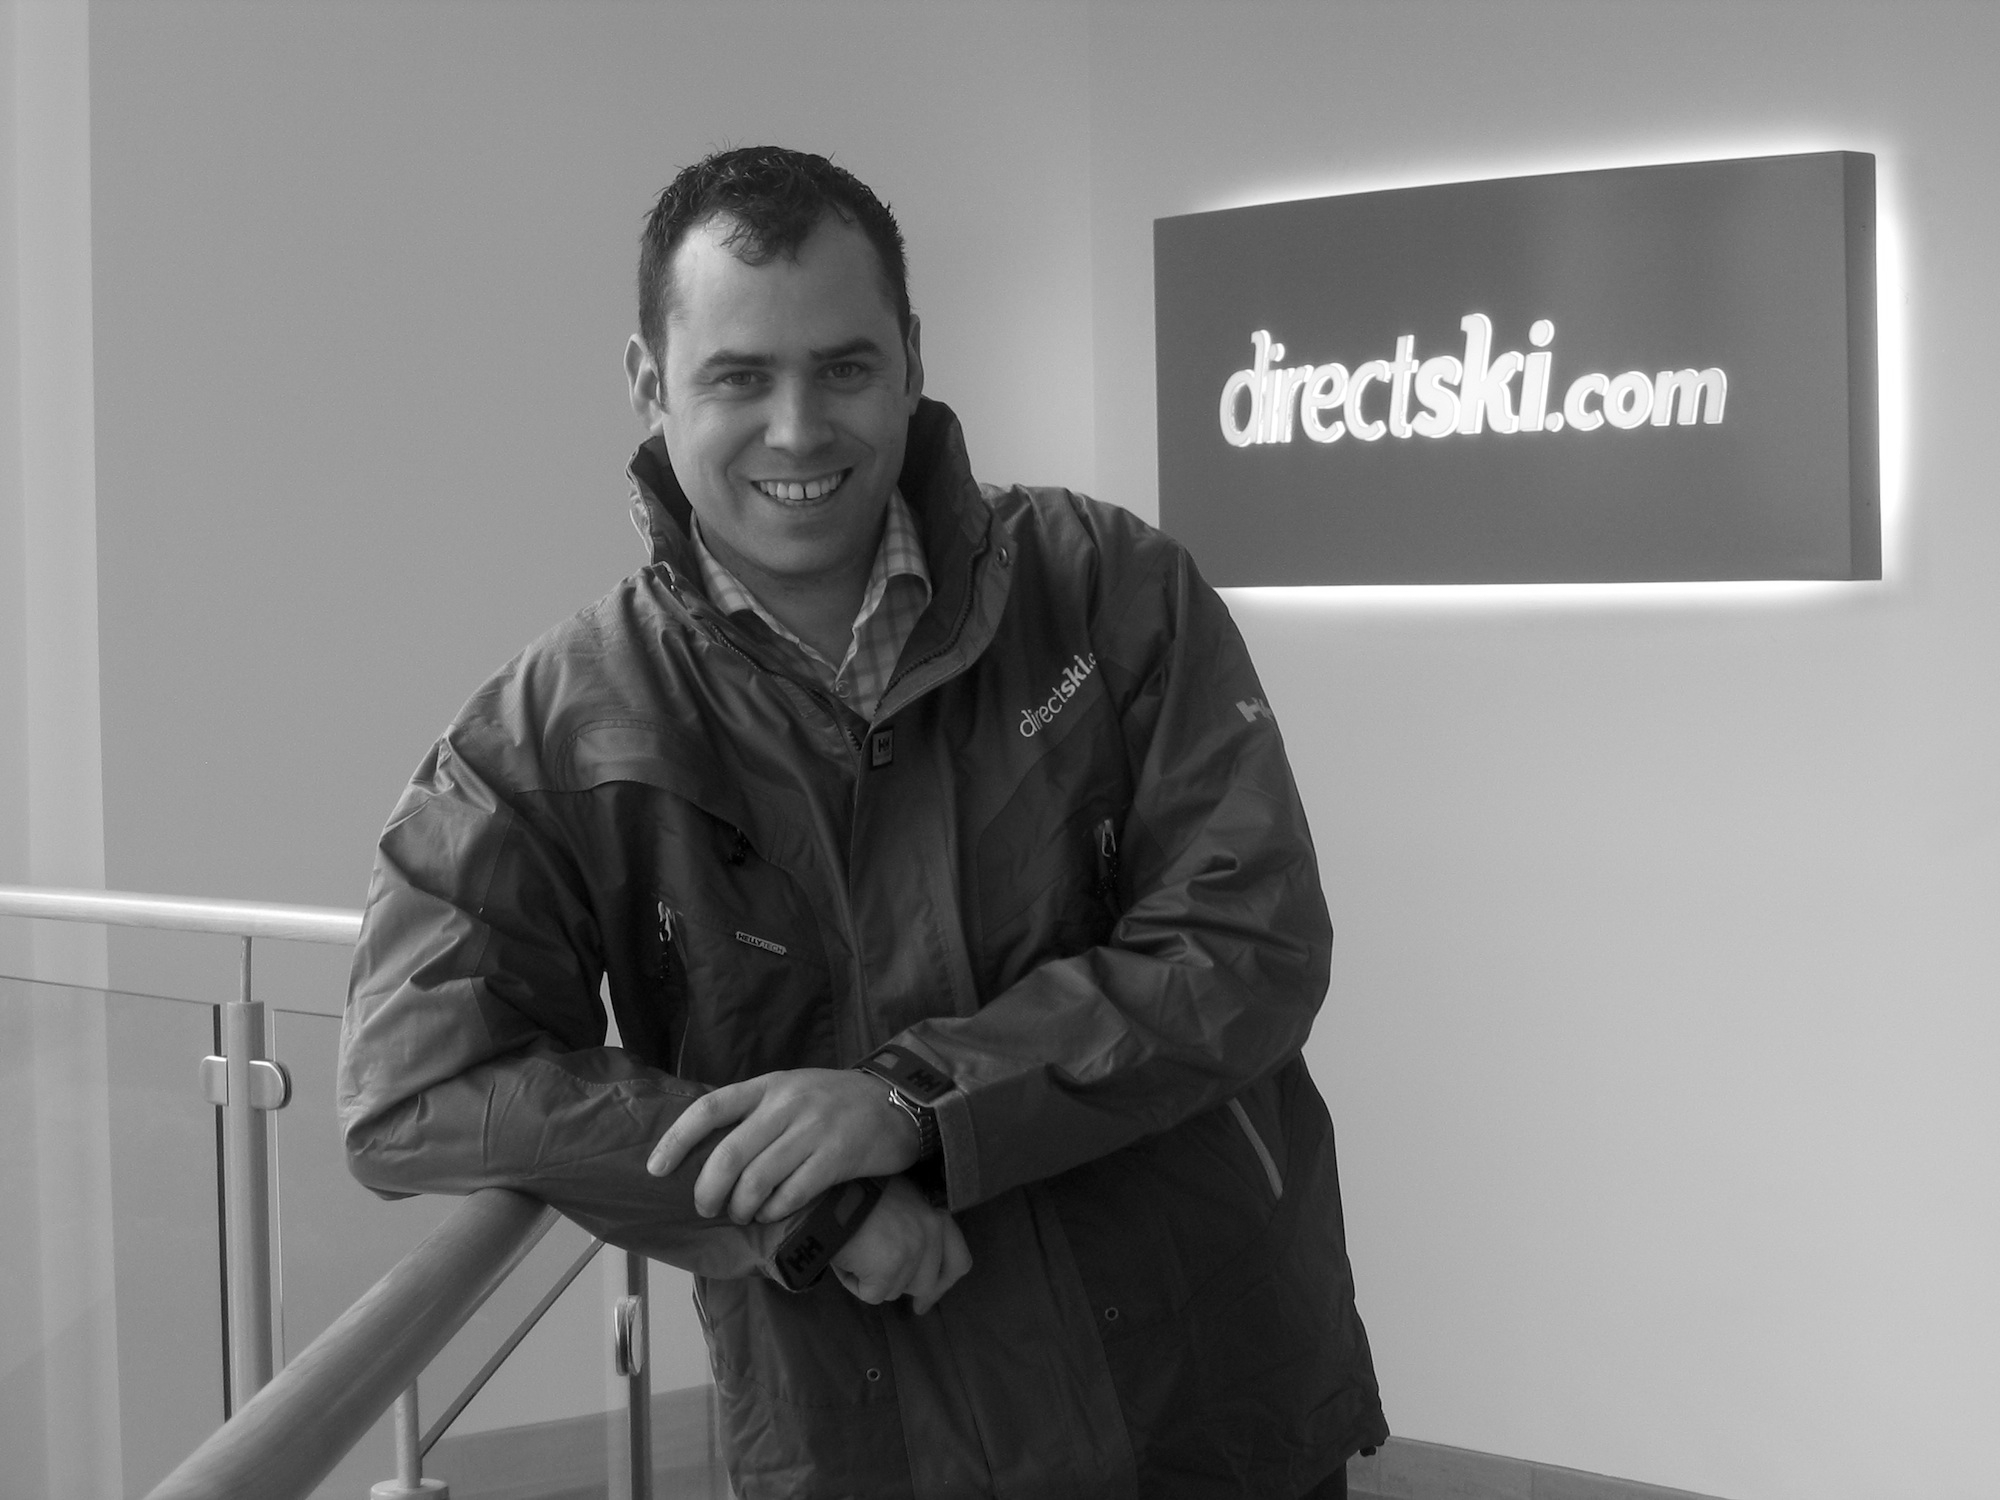 Anthony Collins, Co-Founder and Chief Executive of Directski.com